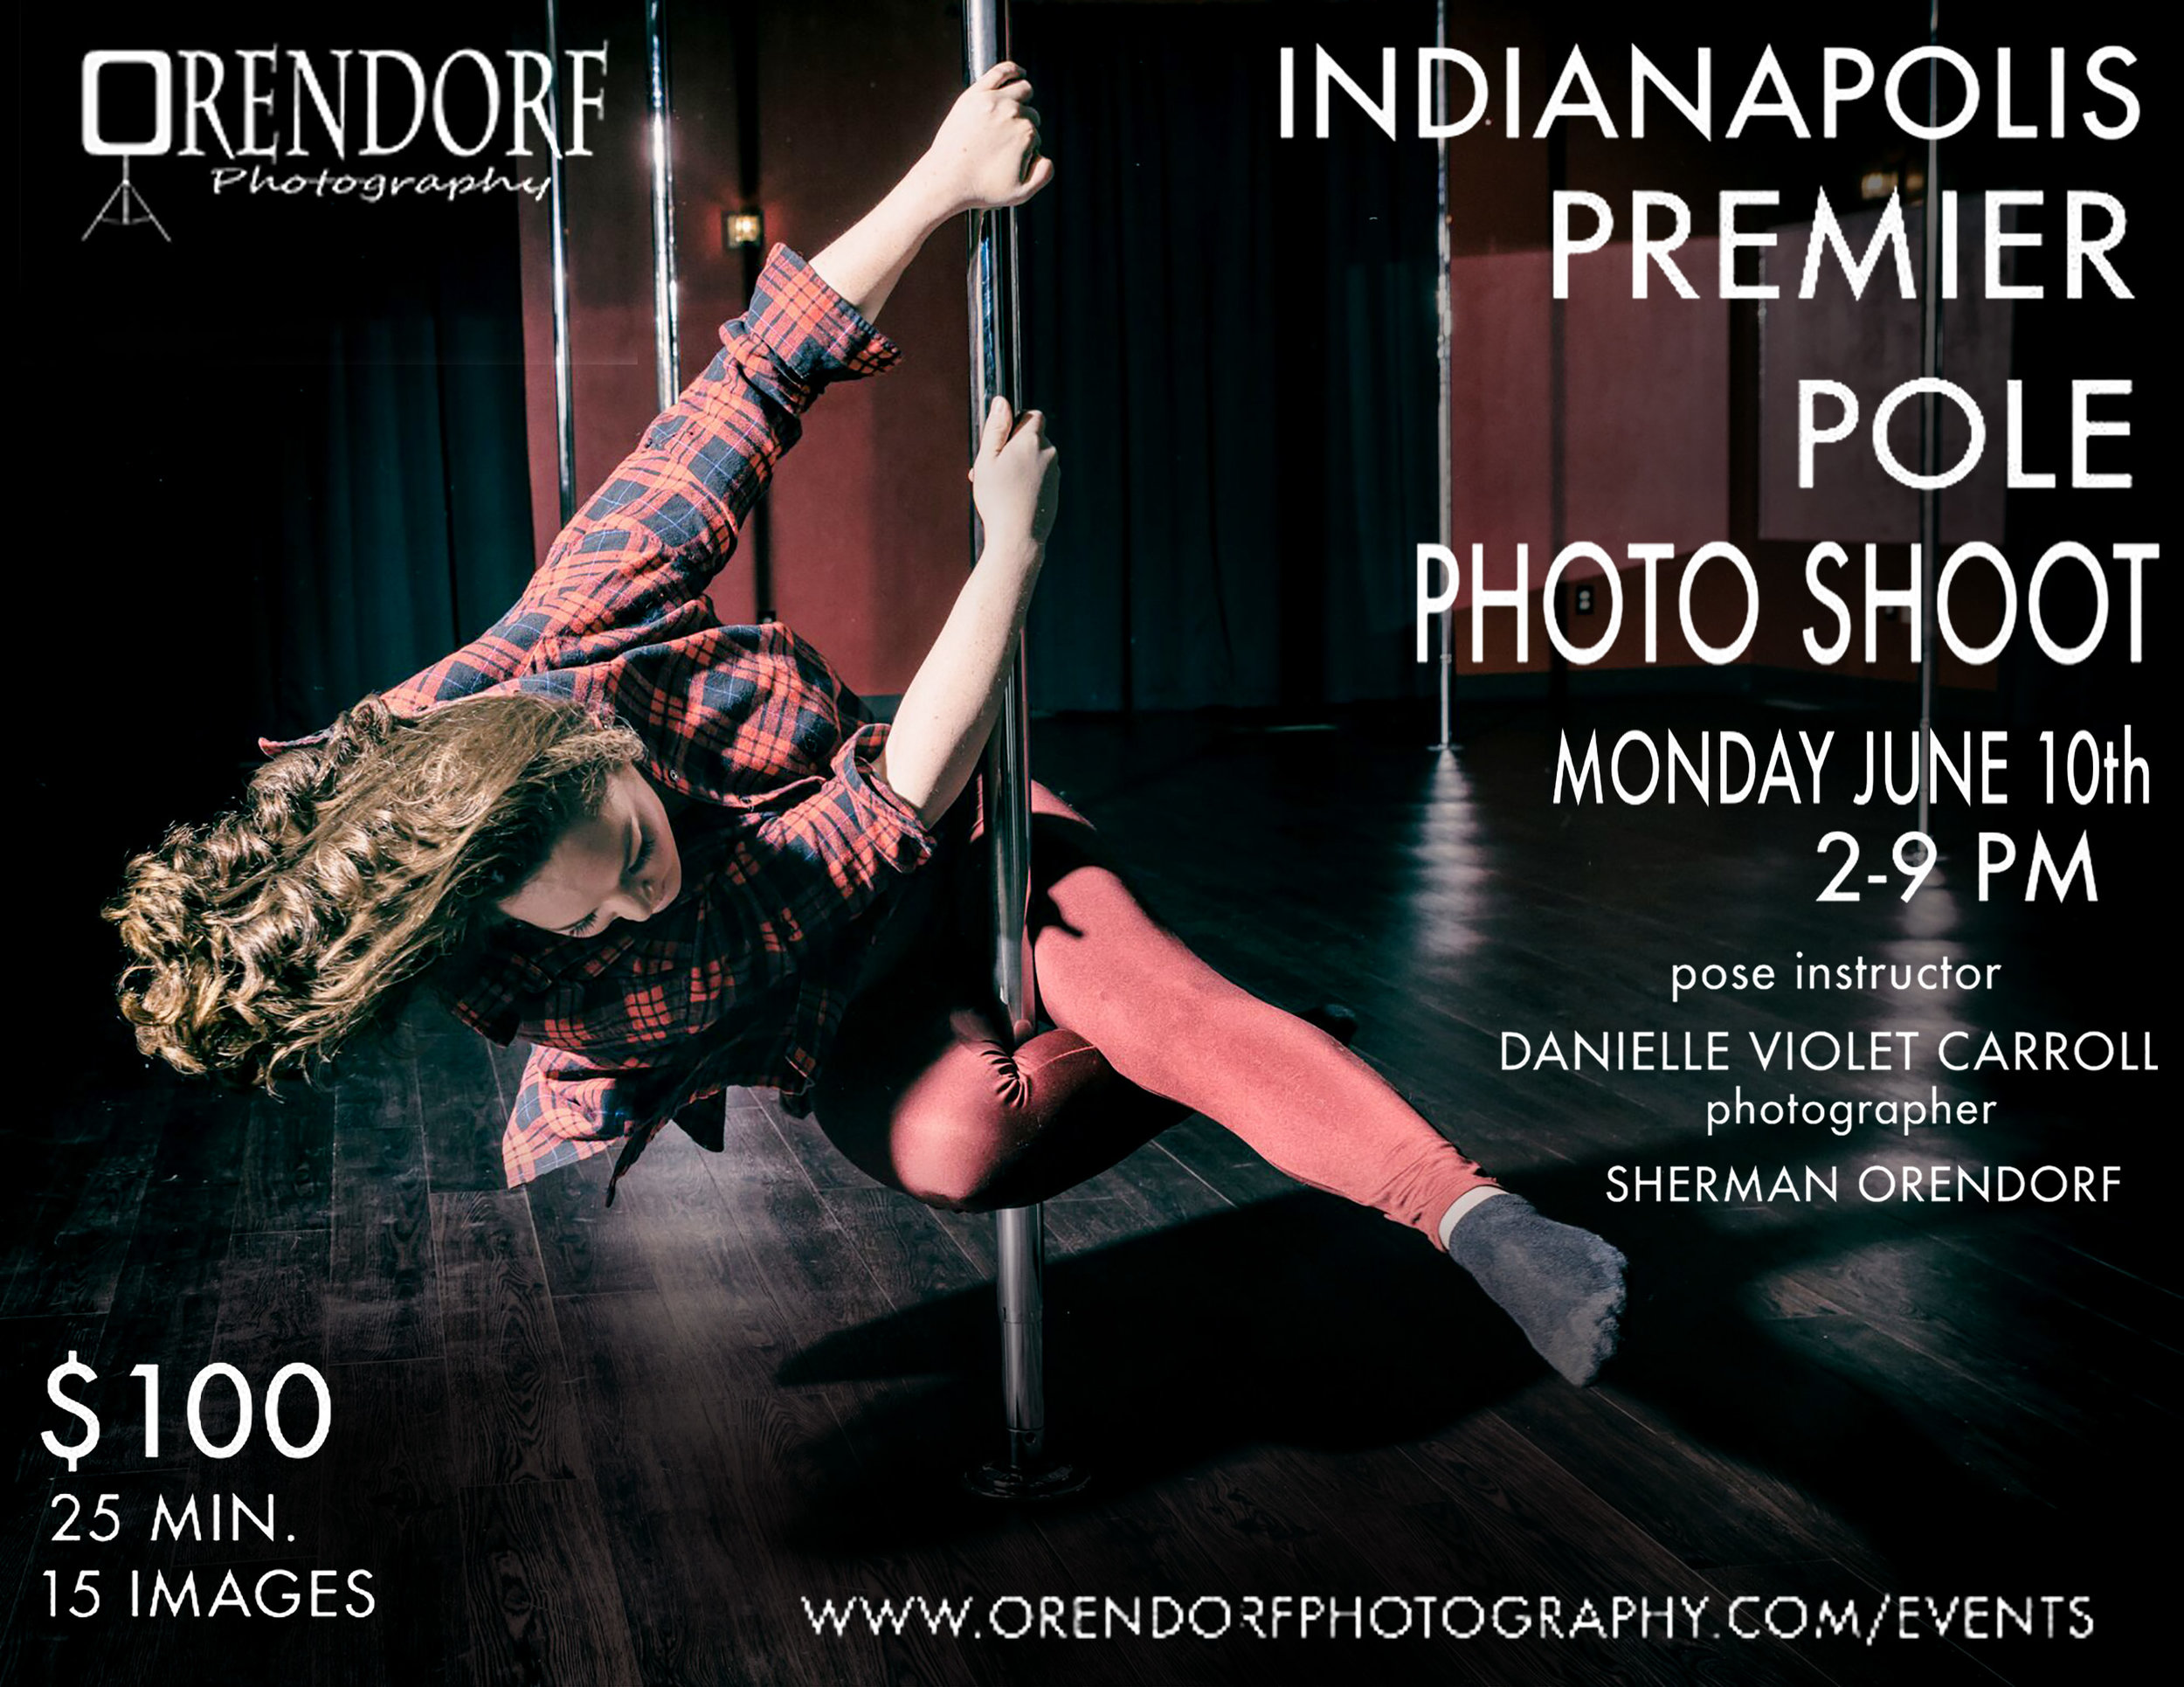 Indianapolis pole photo shoot